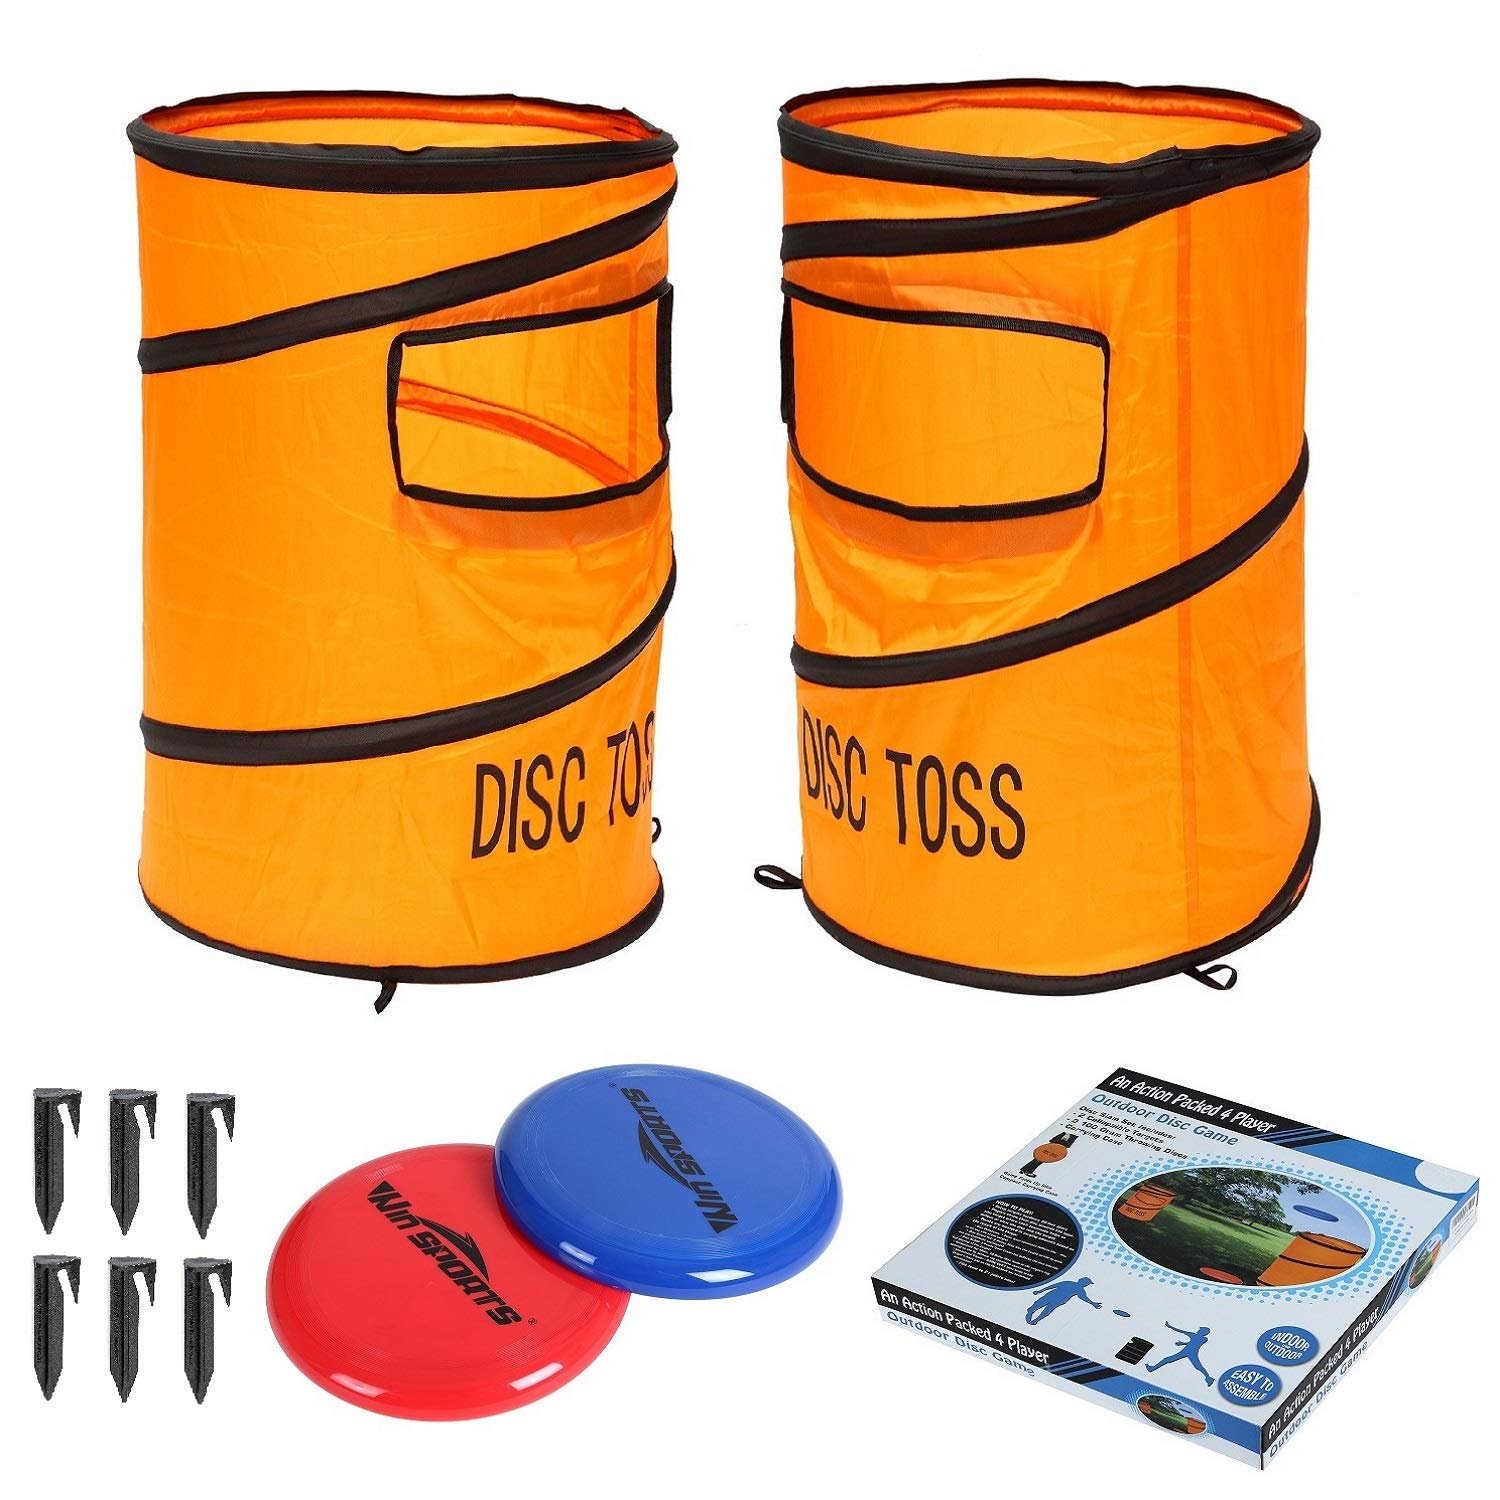 Win SPORTS Folding Disc Slam Game Set丨Flying Disc Toss Dunk Game Set丨Includes 2 Disc Targets with Bean Bag & 2 Flying Discs & Carrying Case丨Great for Backyard,BBQs,Tailgating by Win SPORTS